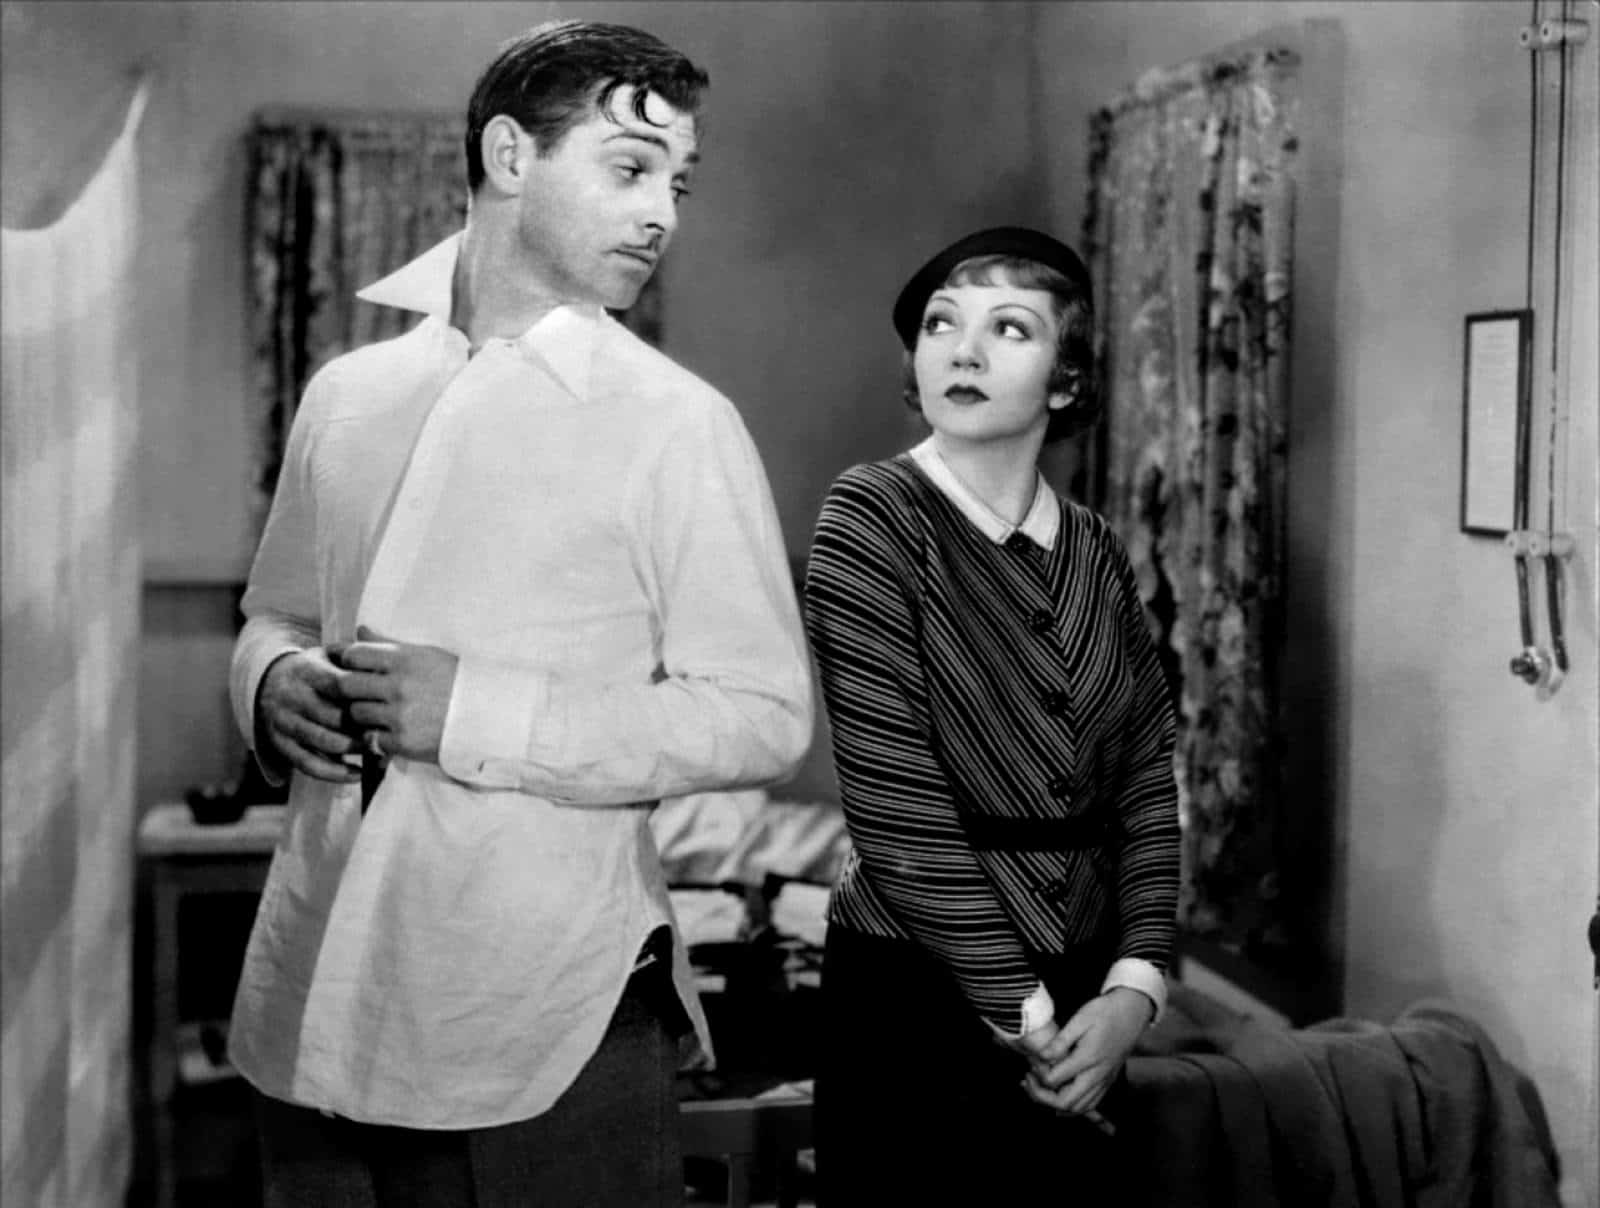 Clark Gable in It Happened One Night without and undershirt in 1934